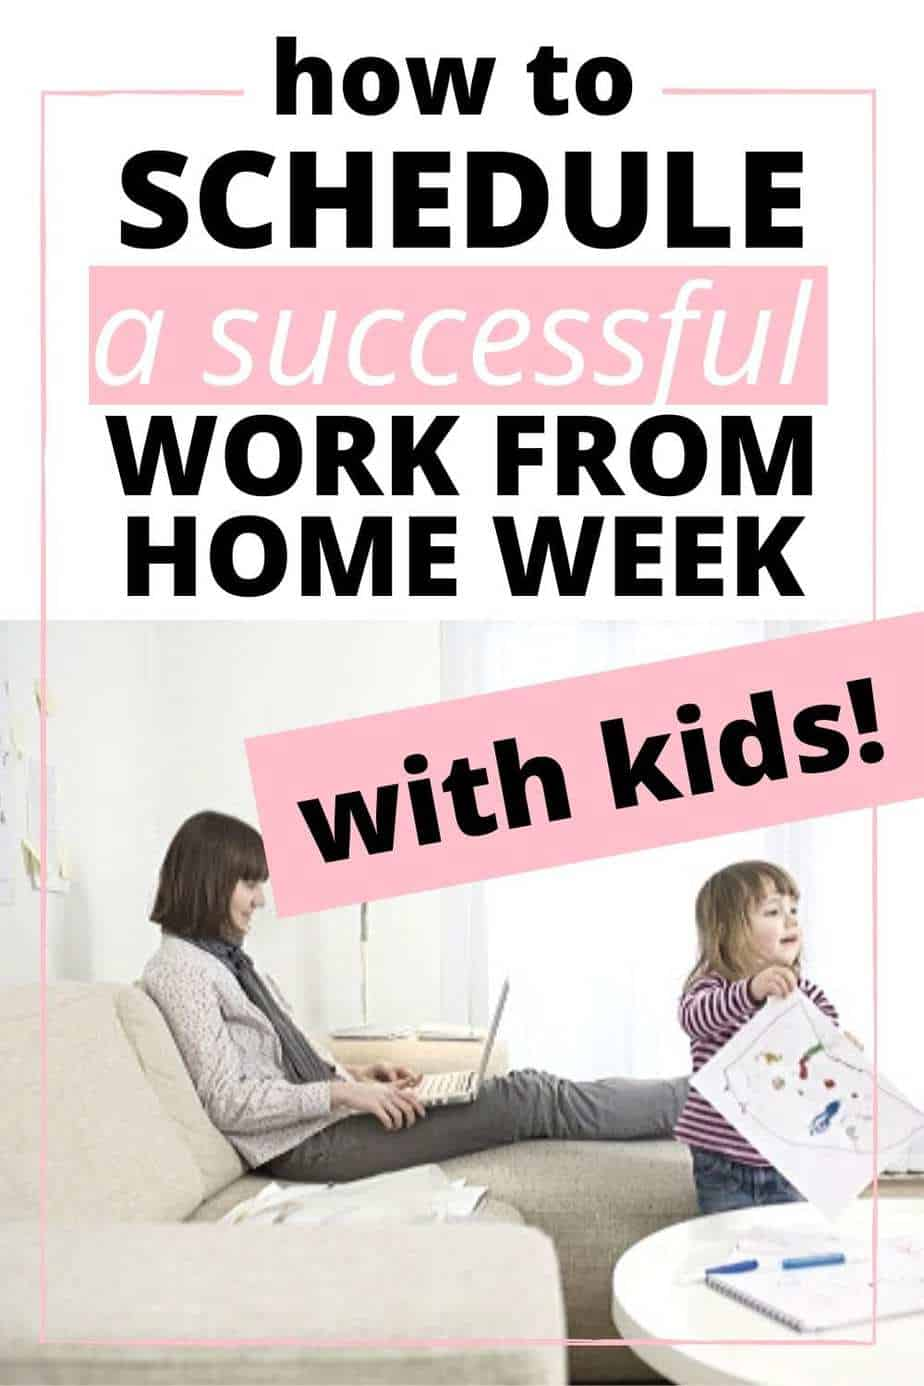 How to schedule a successful work from home week with kids